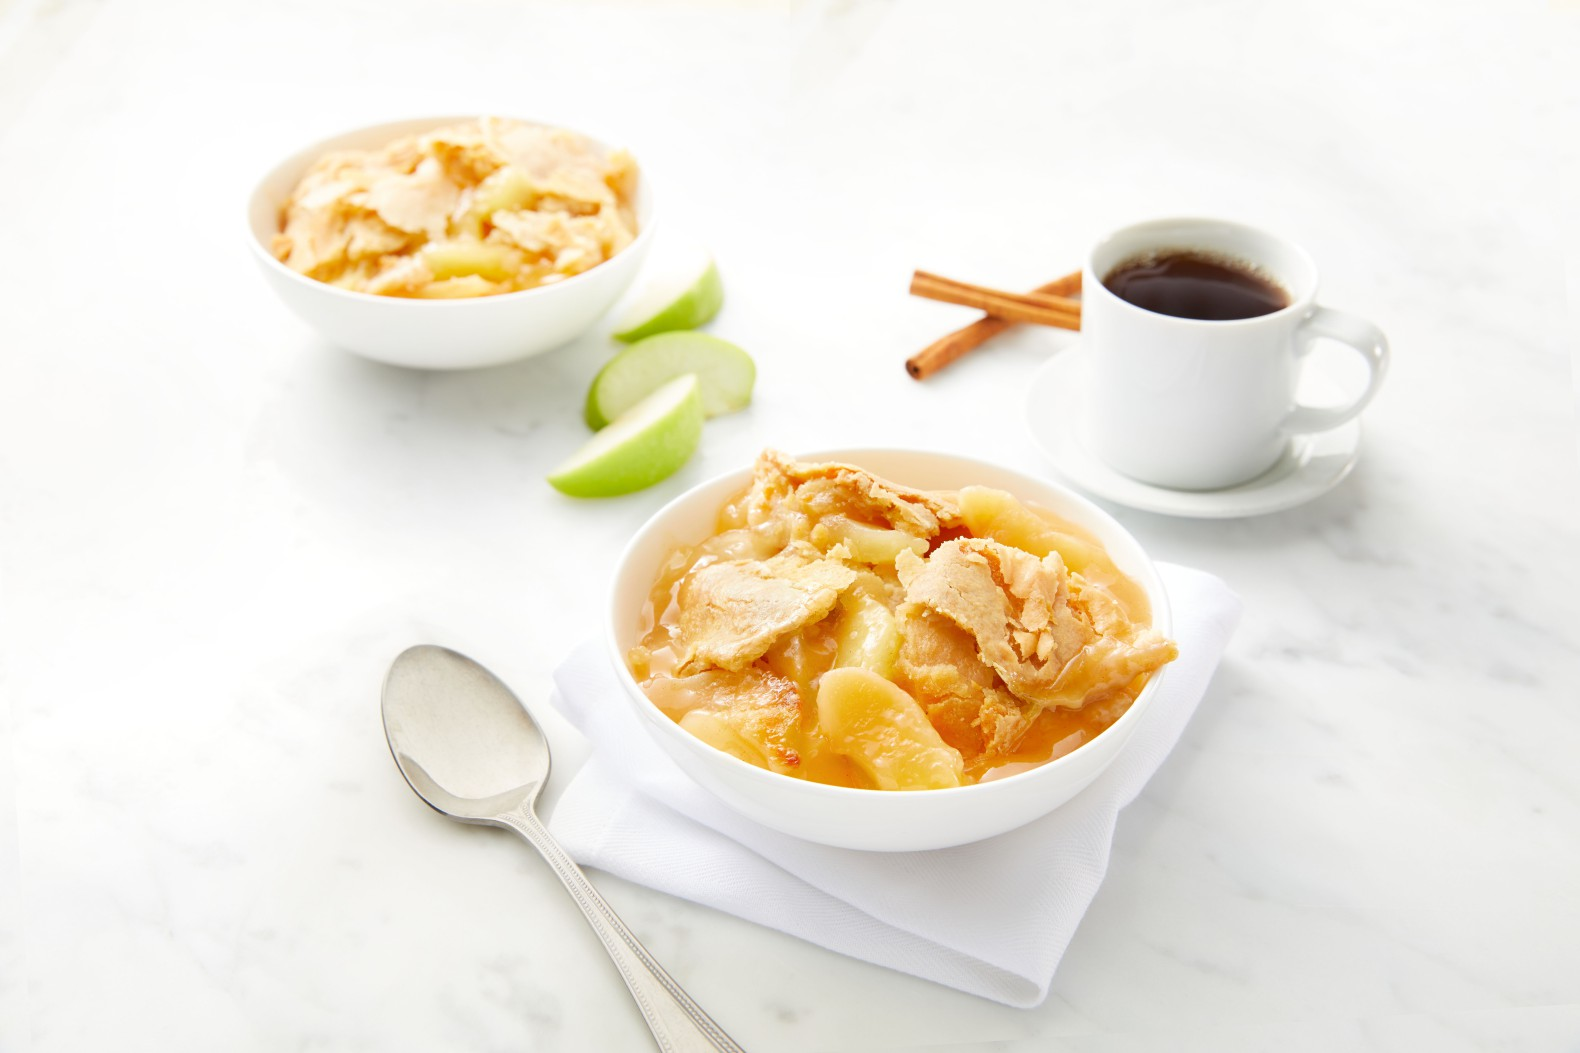 mrs_smith_s_6_lb_buffet_style_ready_to_bake_apple_cobbler-4001470